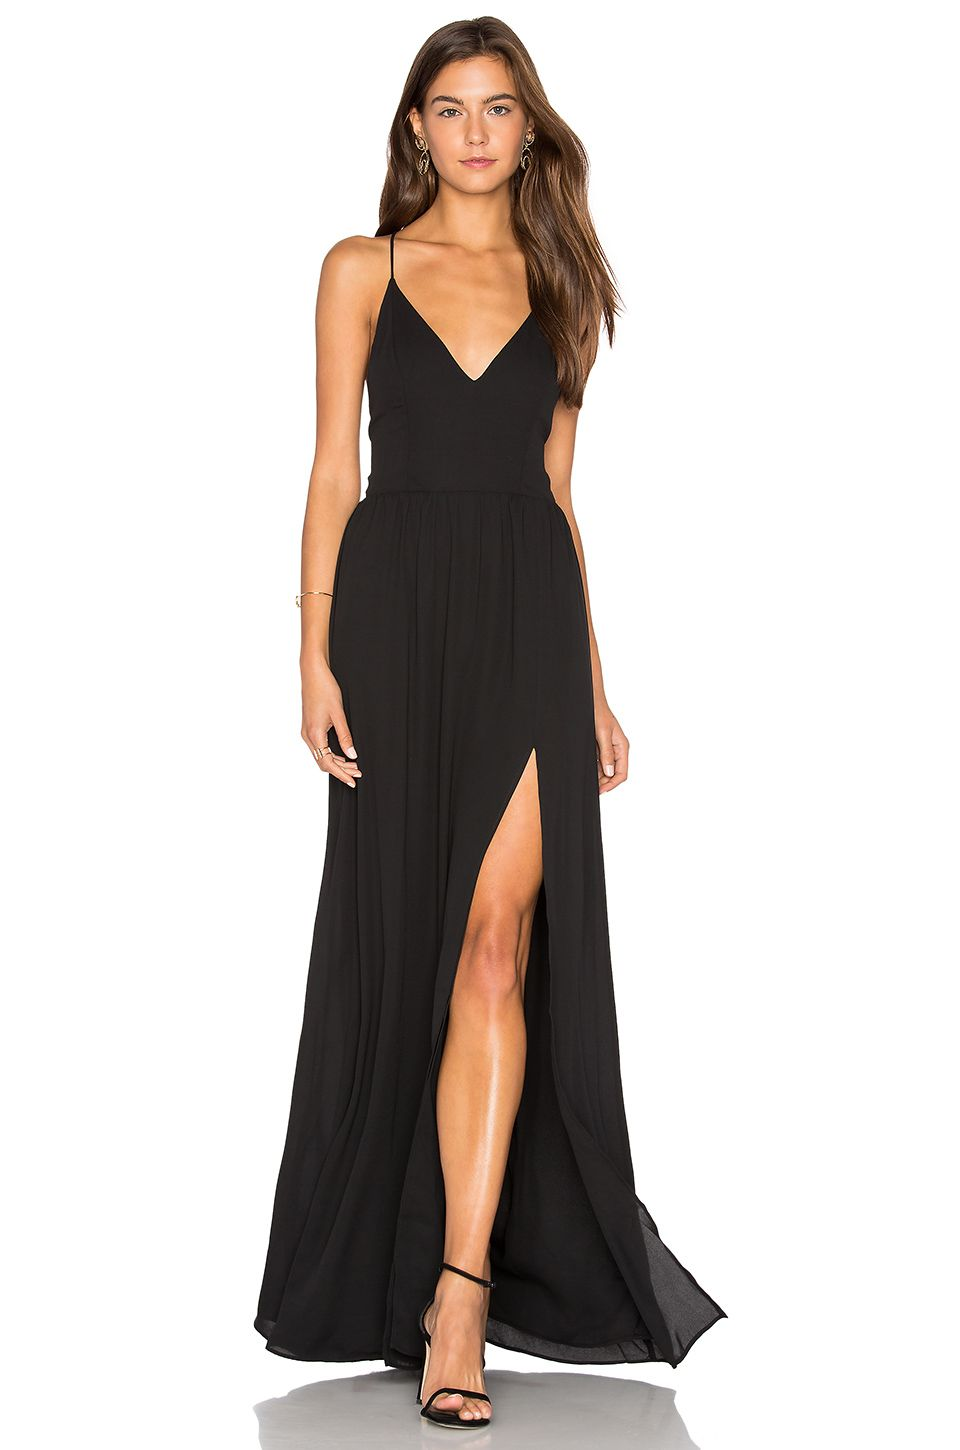 Pin On Revolve Clothing 1,339,969 likes · 6,857 talking about this. pin on revolve clothing